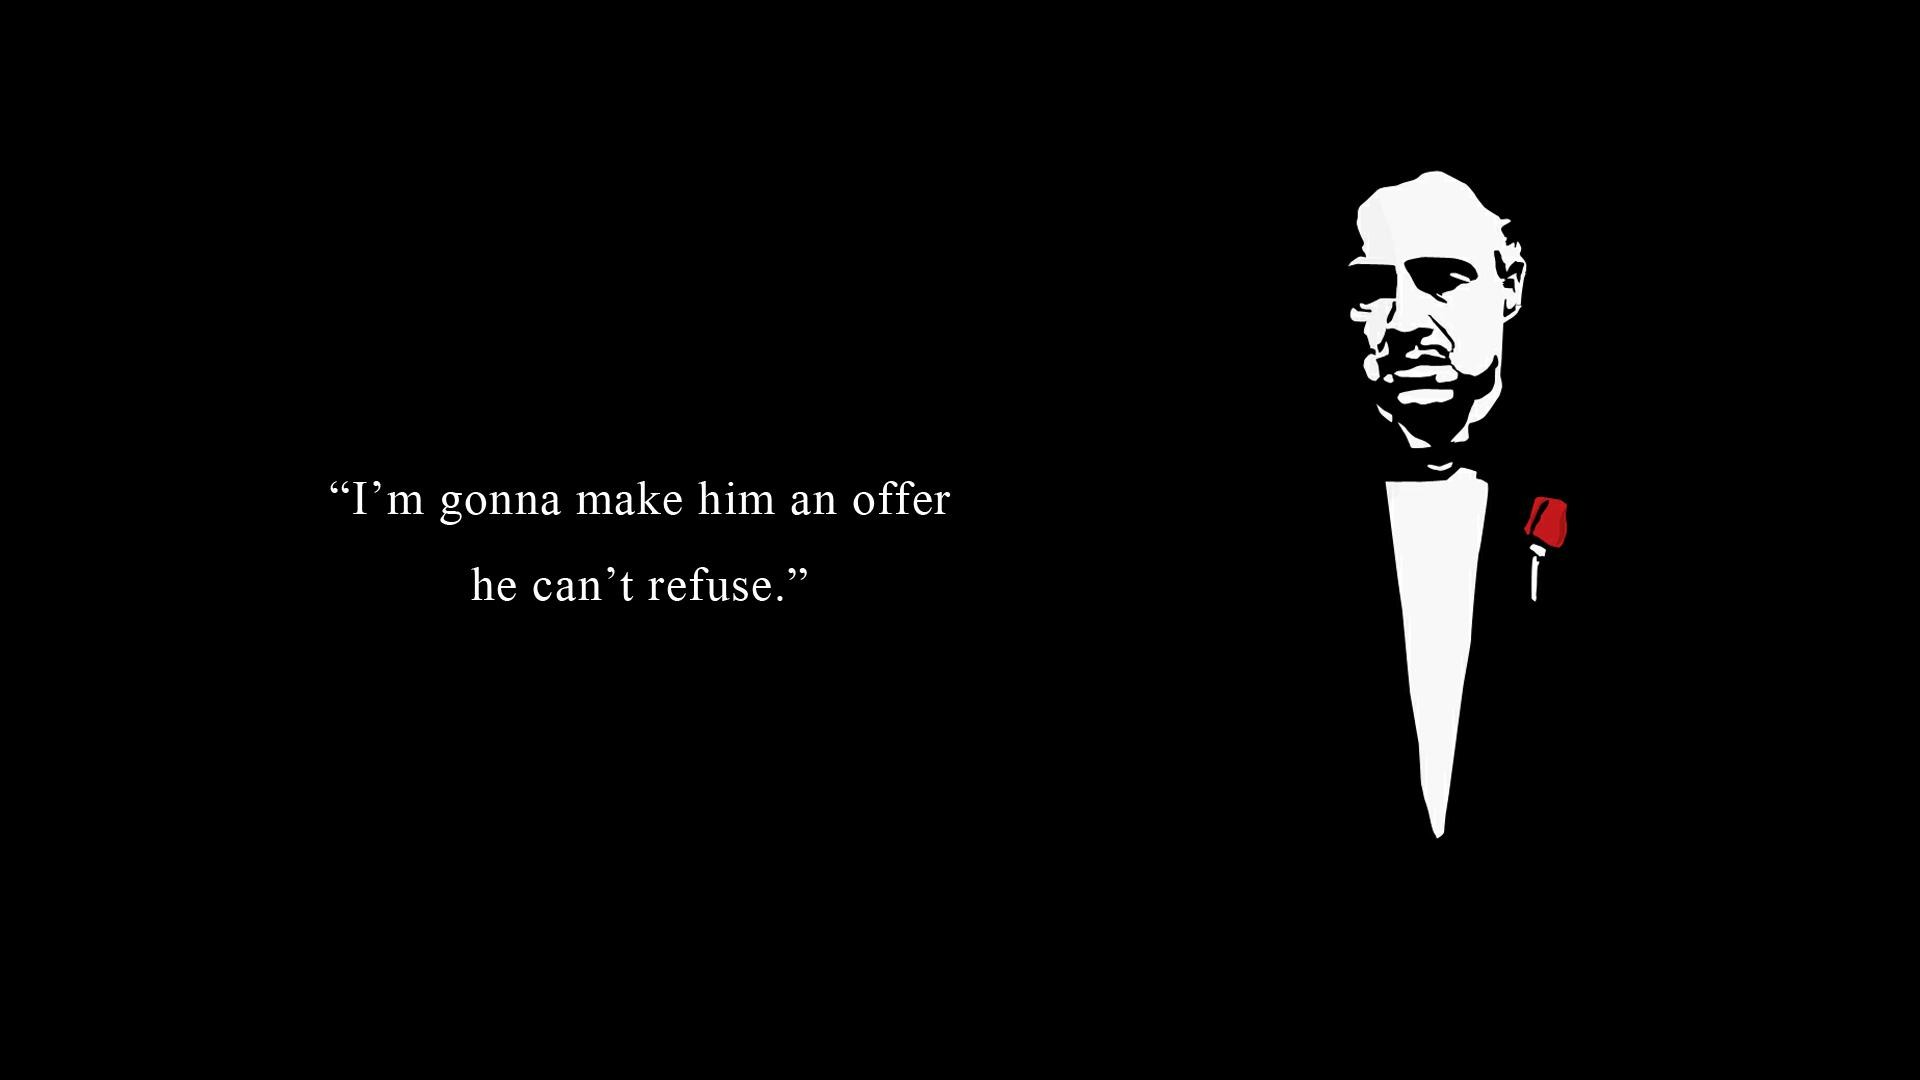 Three Six Mafia Quotes: The Godfather Full HD Wallpaper And Background Image